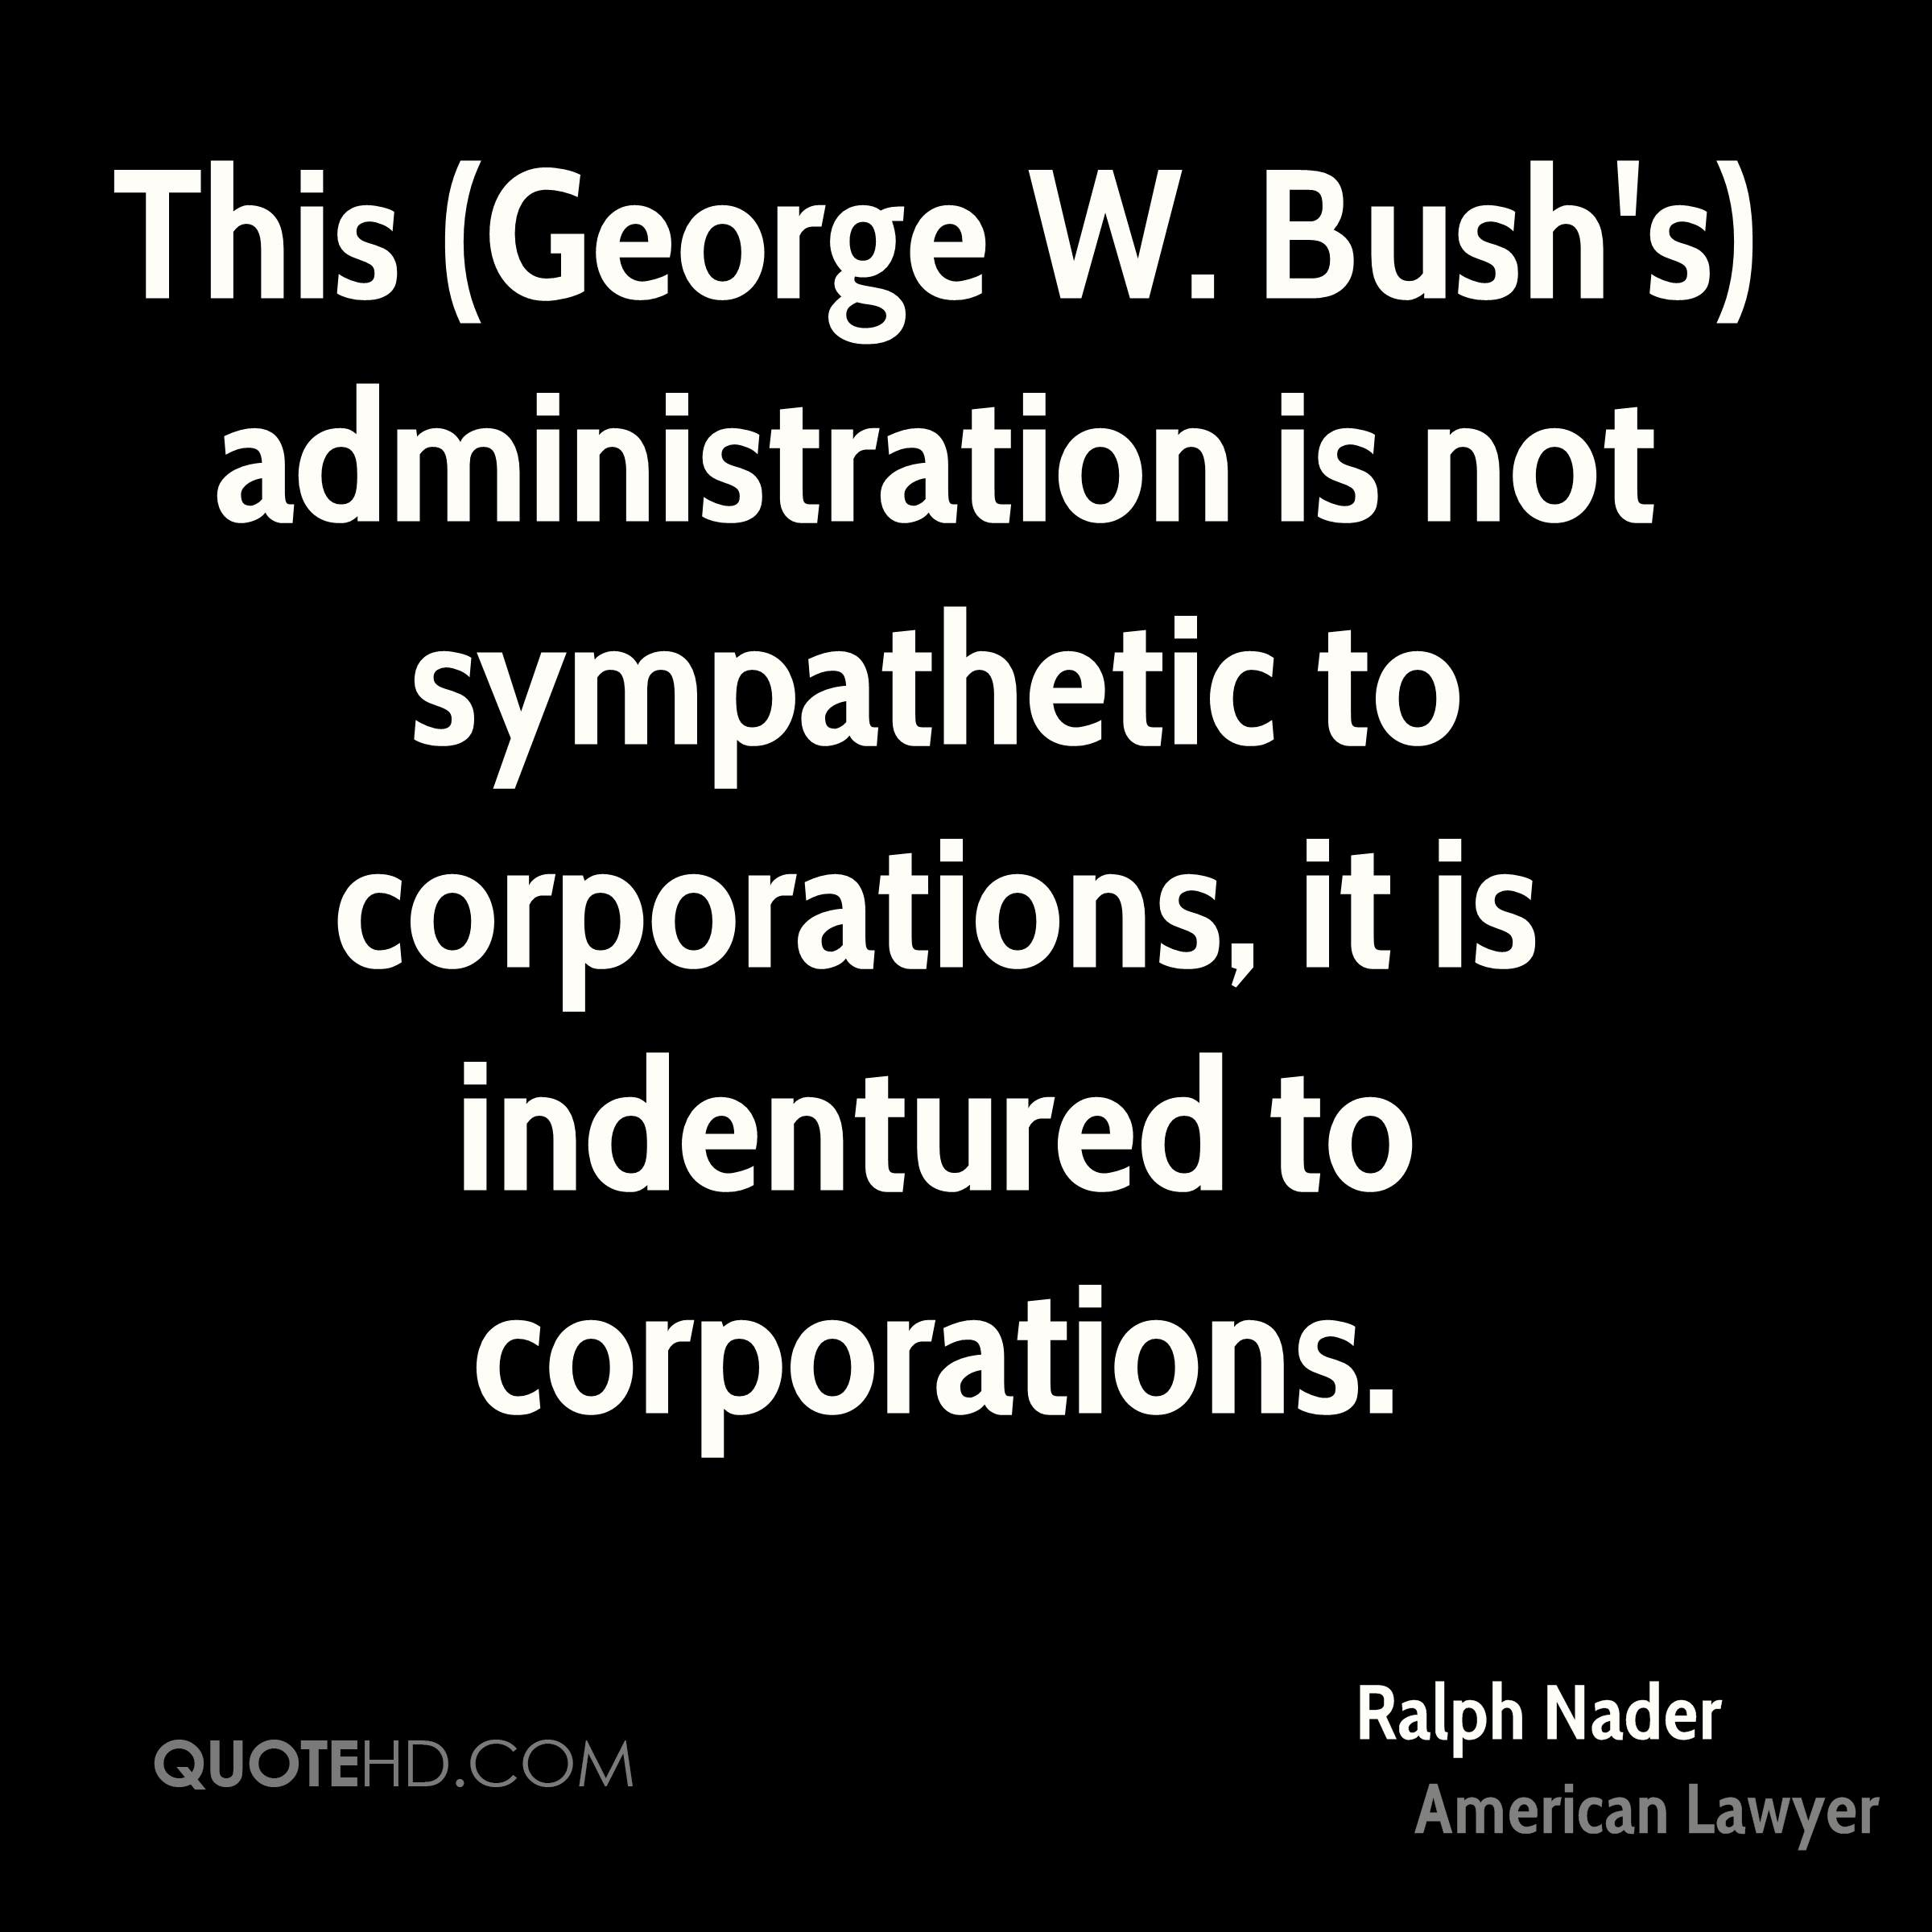 This (George W. Bush's) administration is not sympathetic to corporations, it is indentured to corporations.